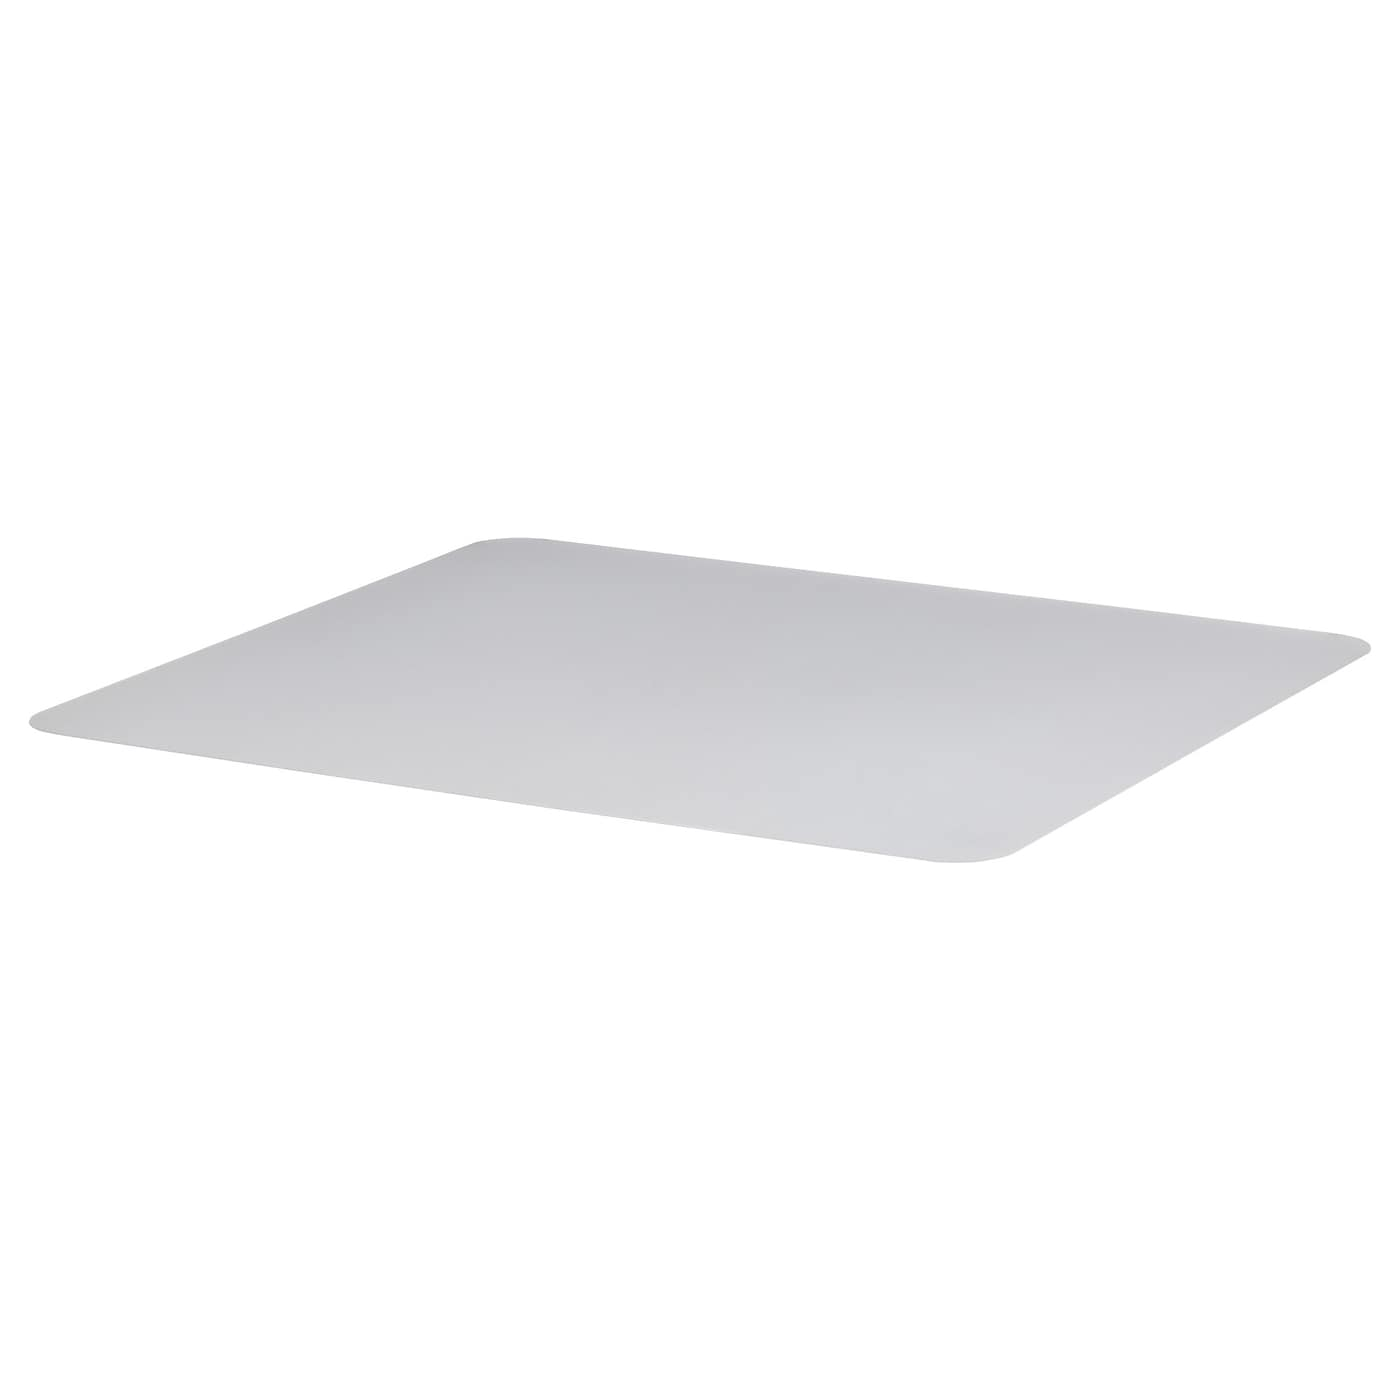 IKEA KOLON floor protector Protects flooring against wear and dirt.